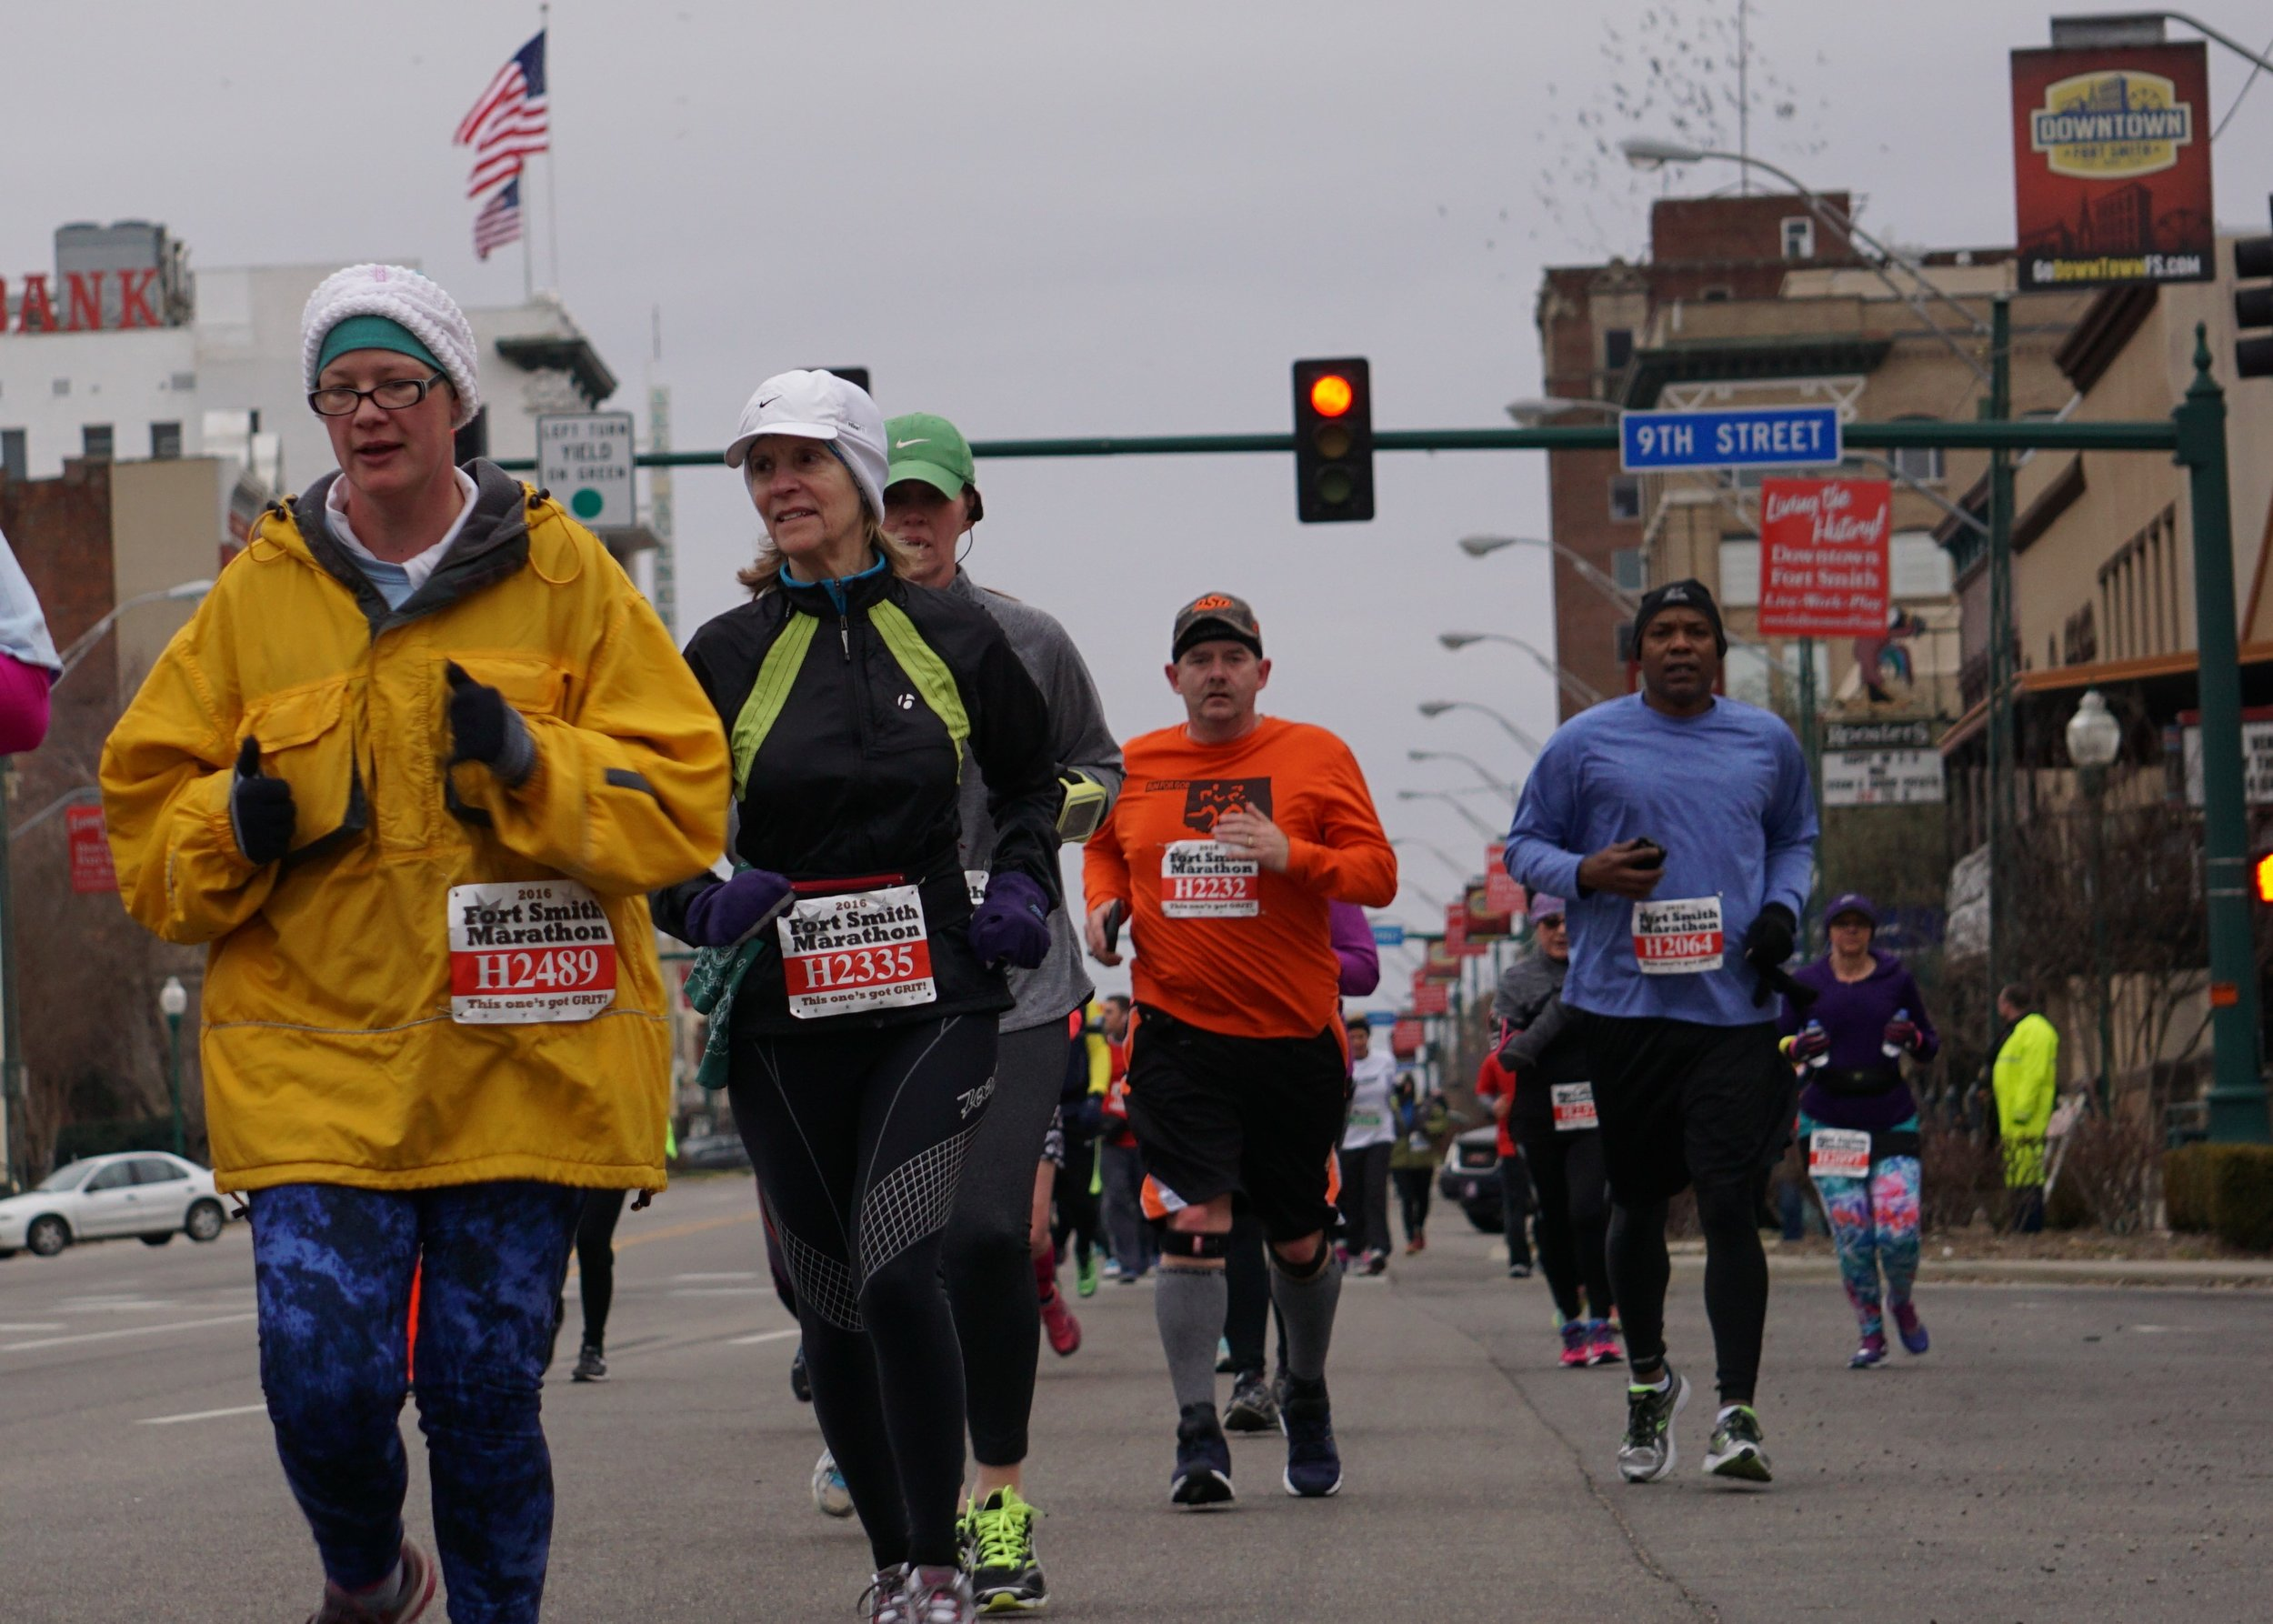 Fort Smith Marathon on downtown's Garrison Avenue, which is also U.S. Highway 64. Wide streets and fast traffic remain a threat to the day-to-day walkability of downtown Fort Smith. (Source: 64.6 Downtown)